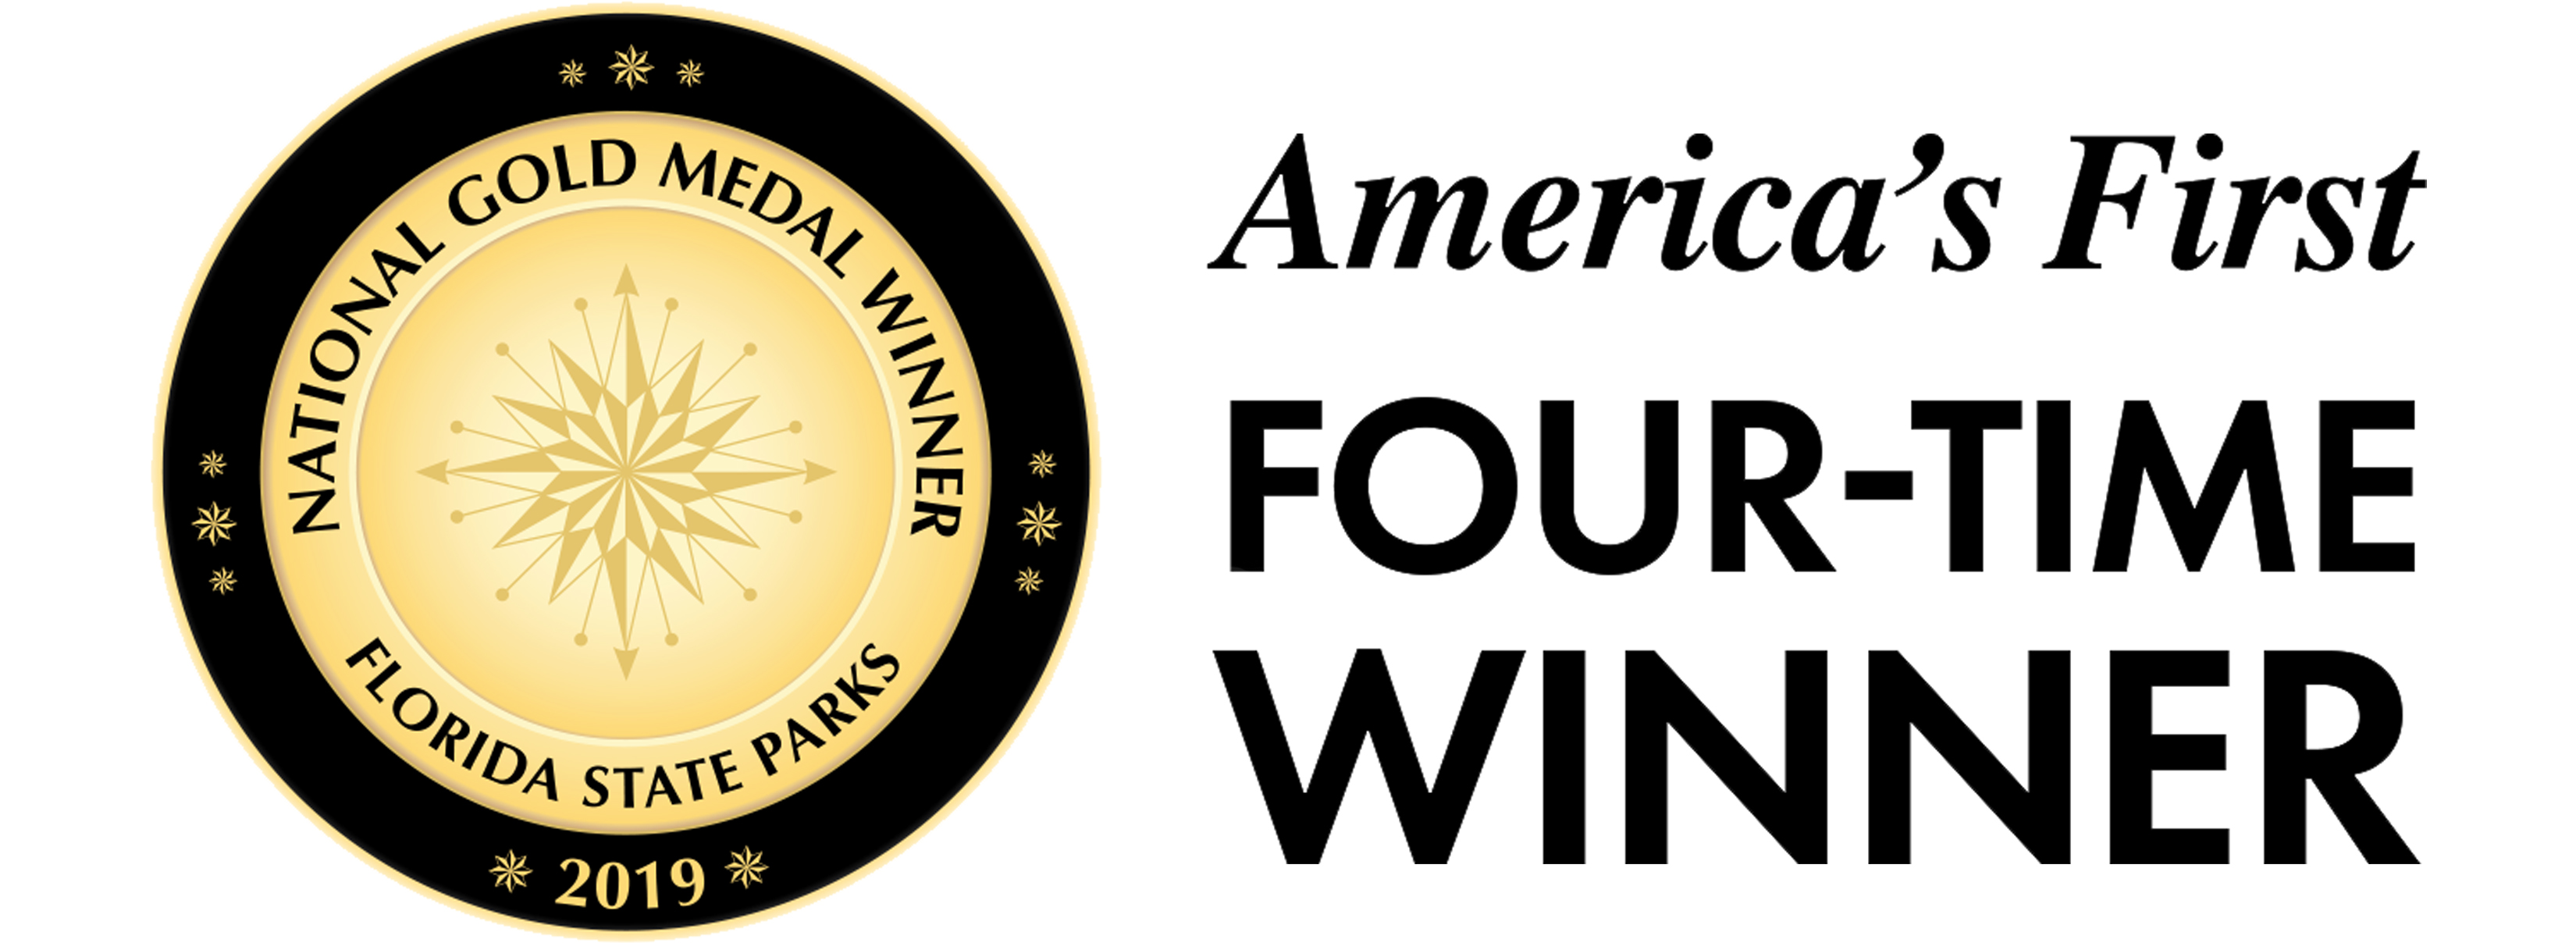 Gold Medal - America's First Four Time Winner